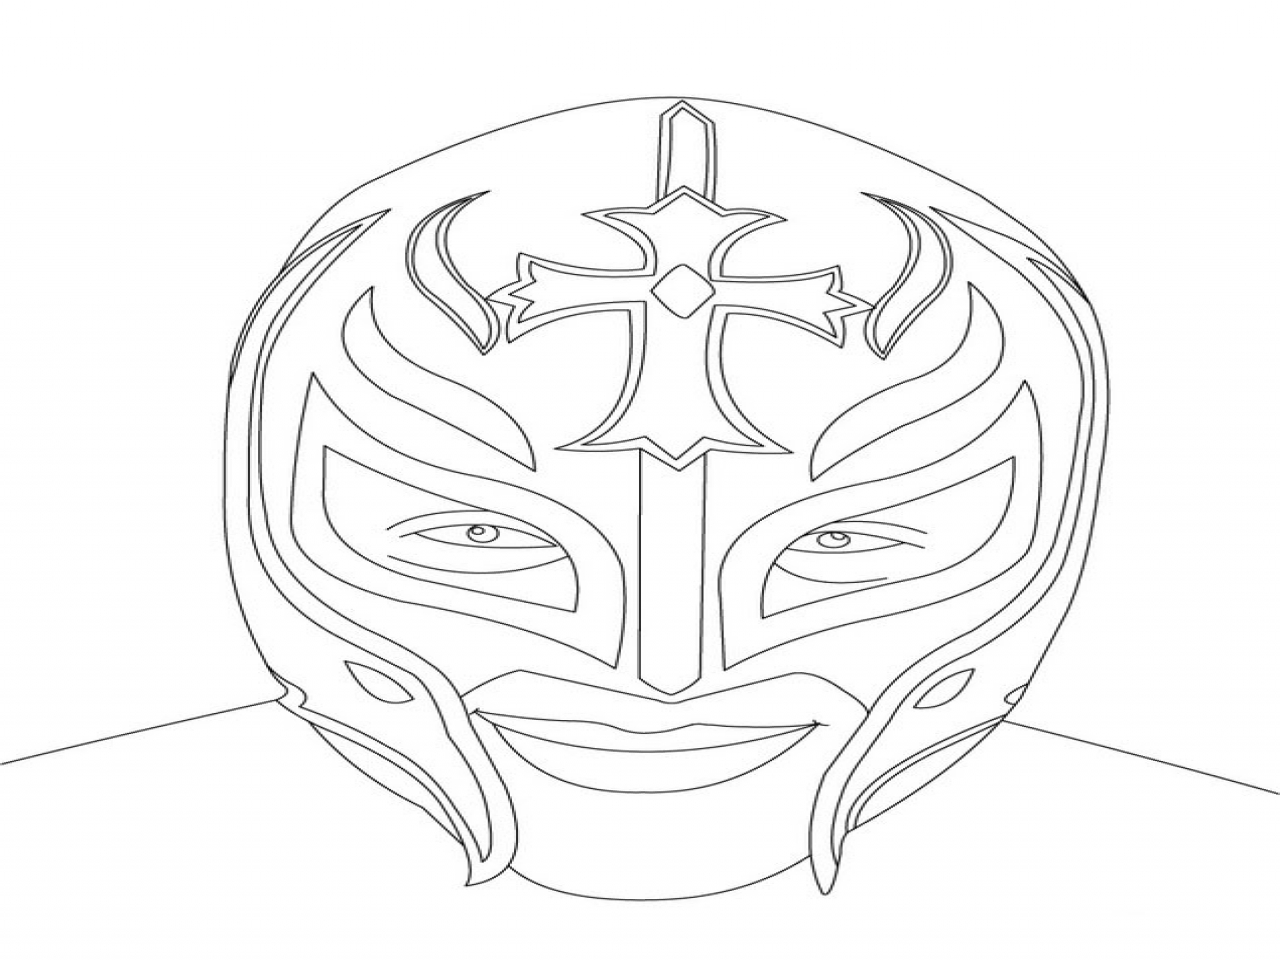 1280x960 Wwe Superstars Coloring Pages Rey Mysterio